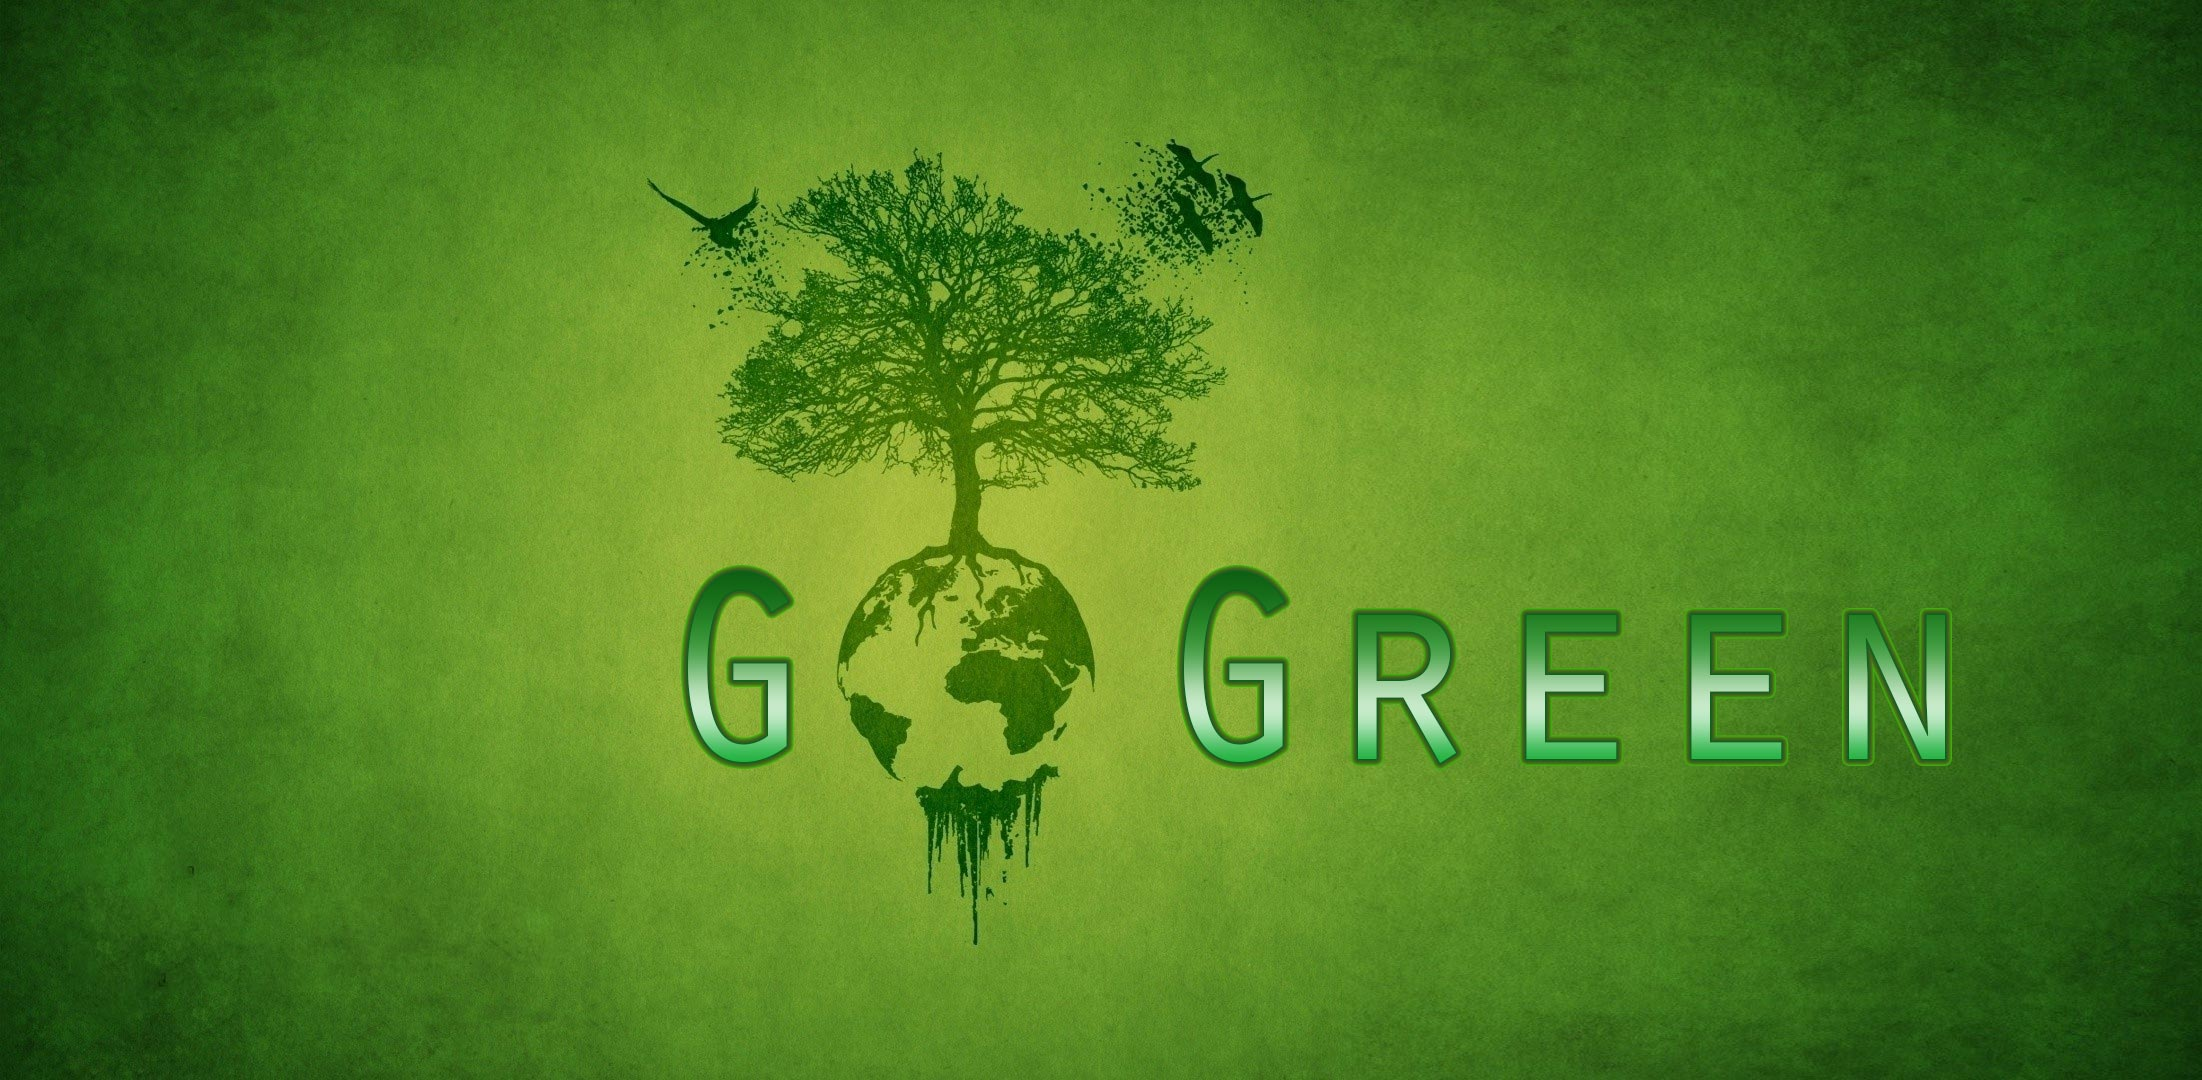 1920x1200-Go-Green-Wallpaper